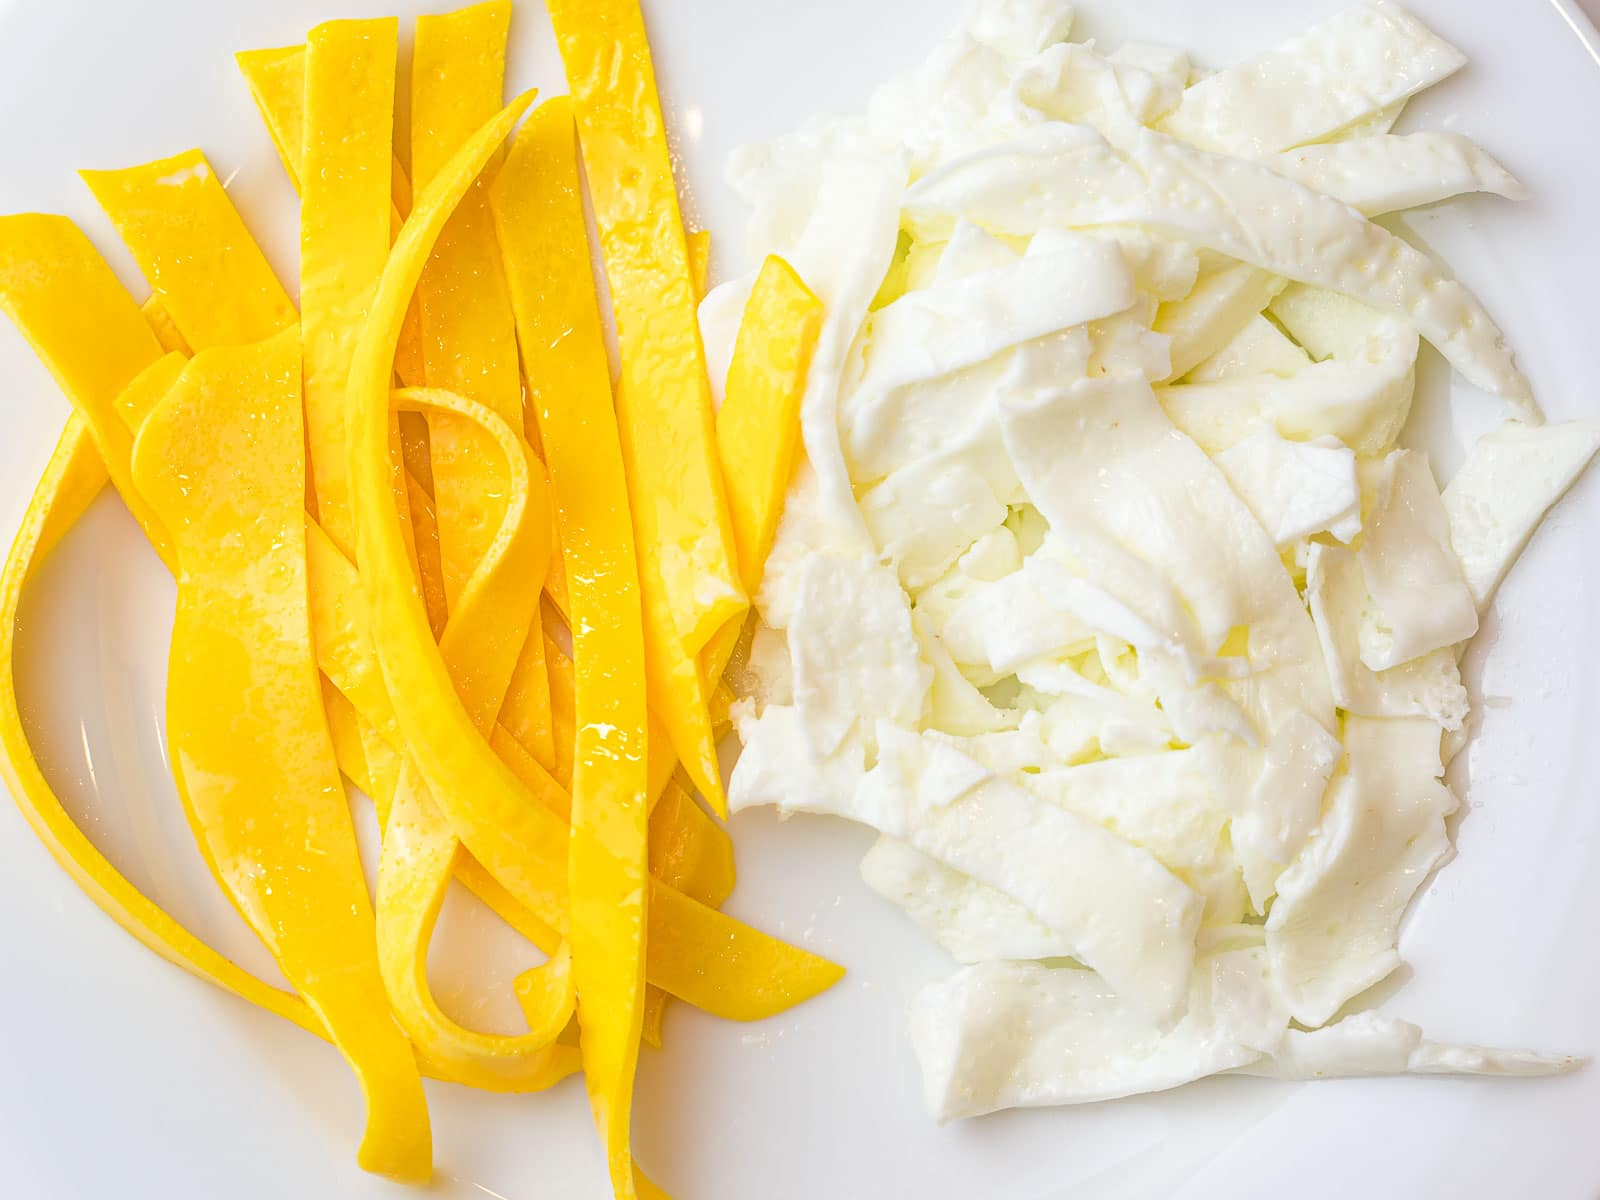 fried egg yolks and egg whites cut into strips